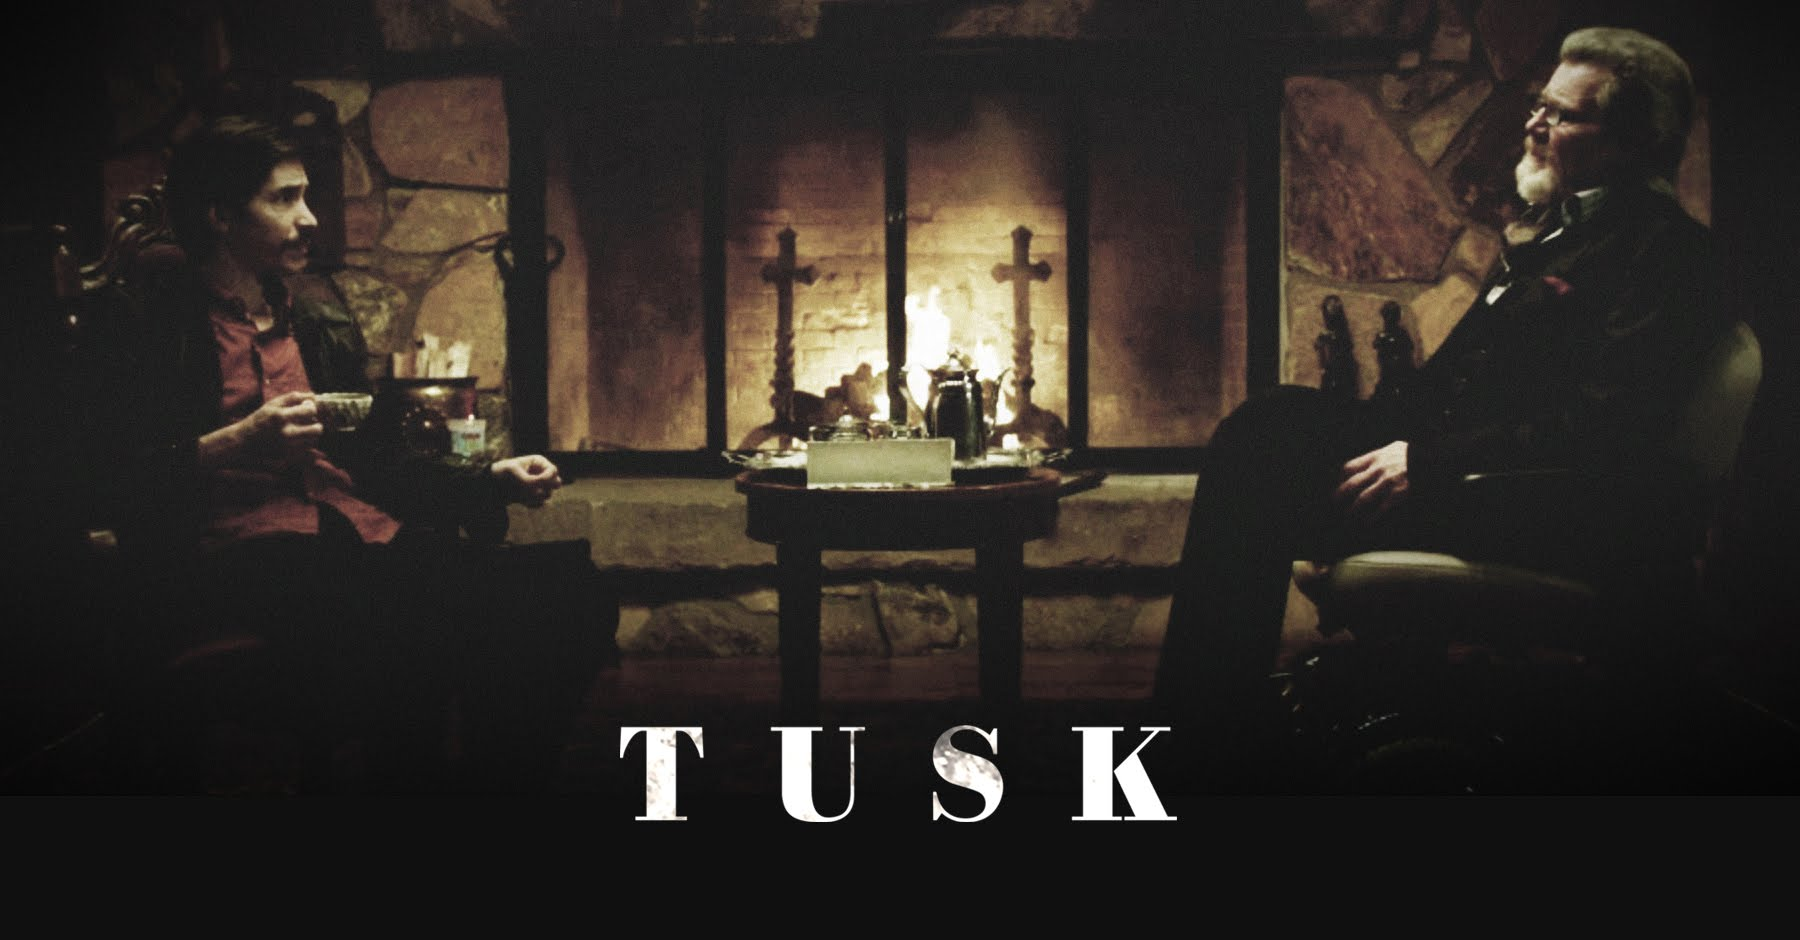 New York Cine #137: Film discussions on Kevin Smith's Tusk, Expendables 3, Oculus, Identity Thief and James Bond!